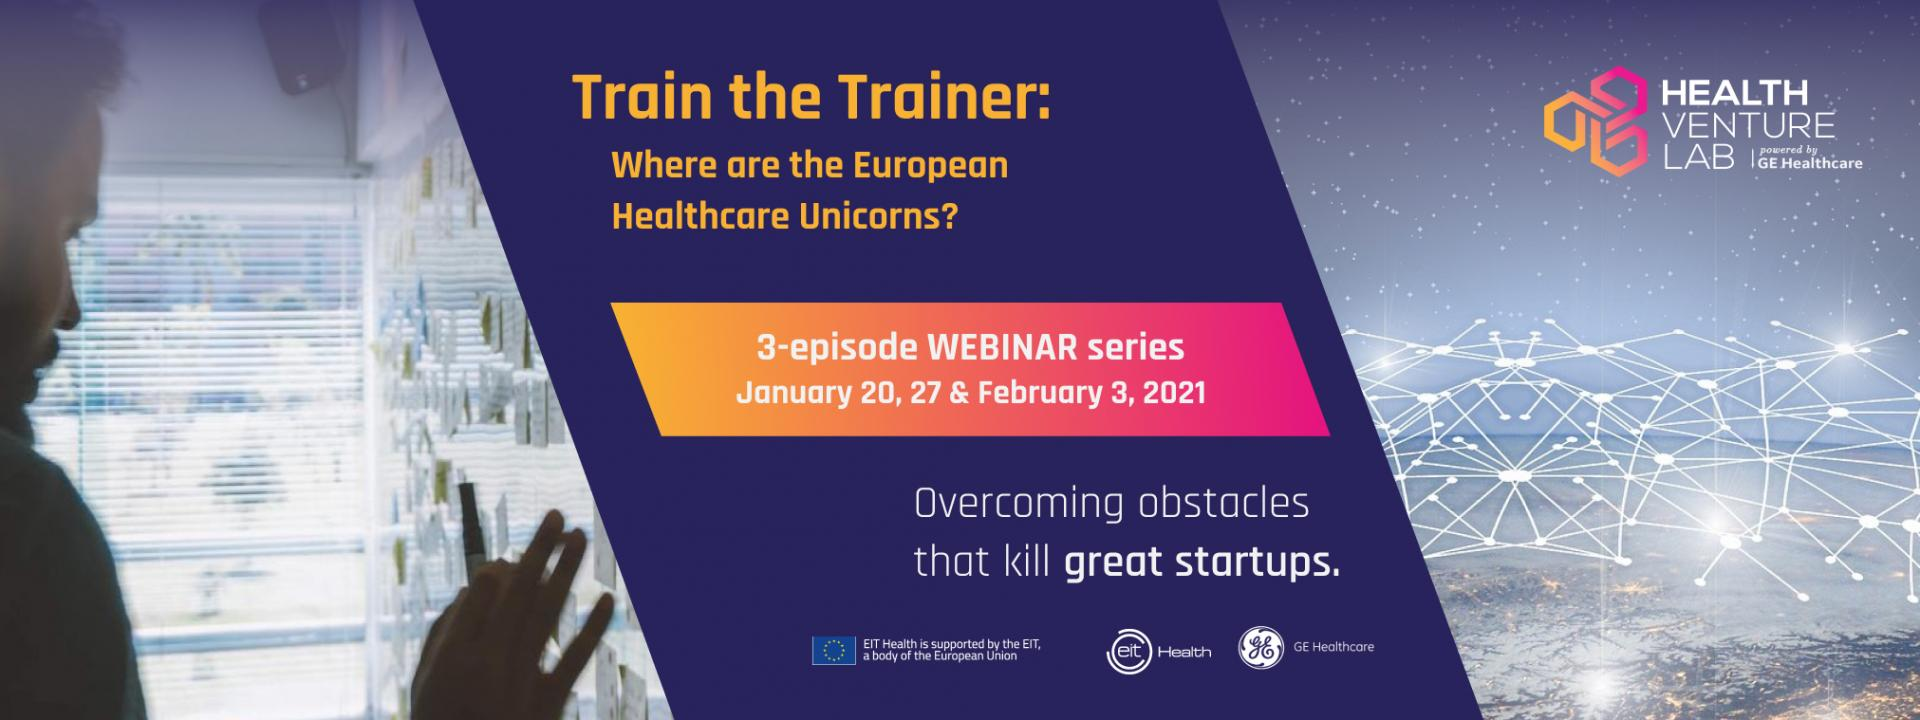 Where are the European Healthcare Unicorns? Train The Trainer webinar